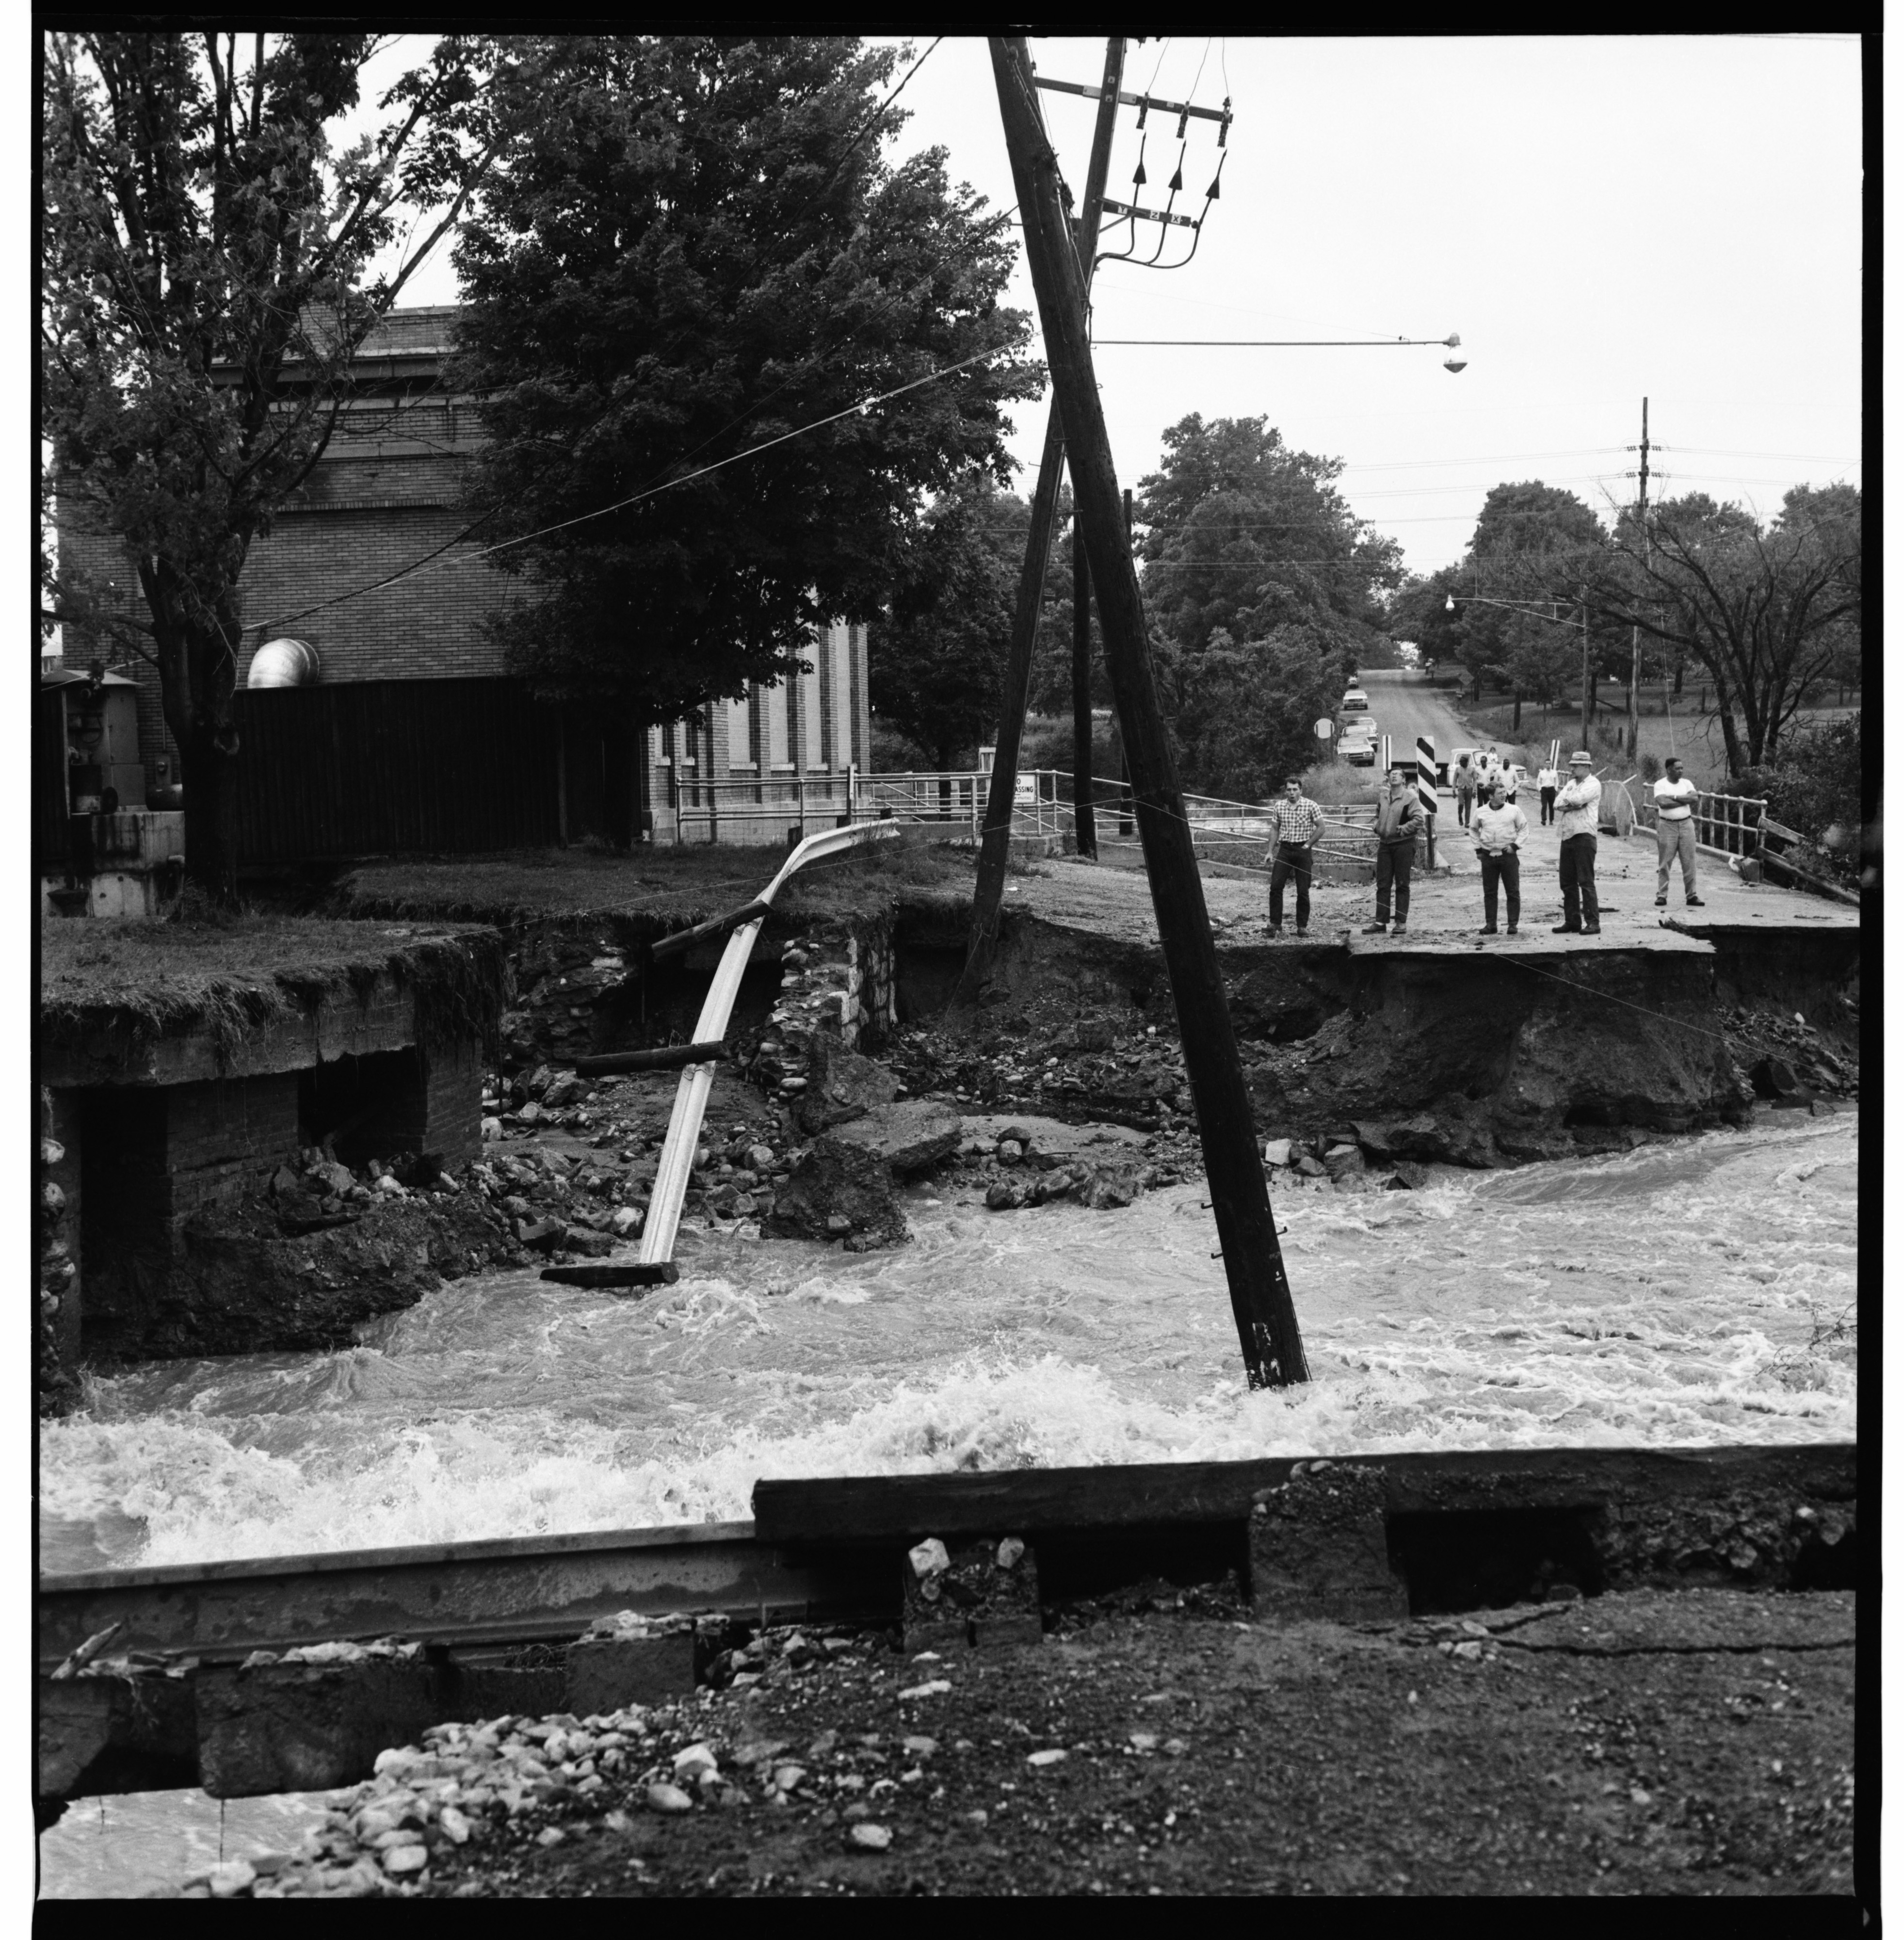 Washed Out Dixboro Rd, June 1968 Flood image